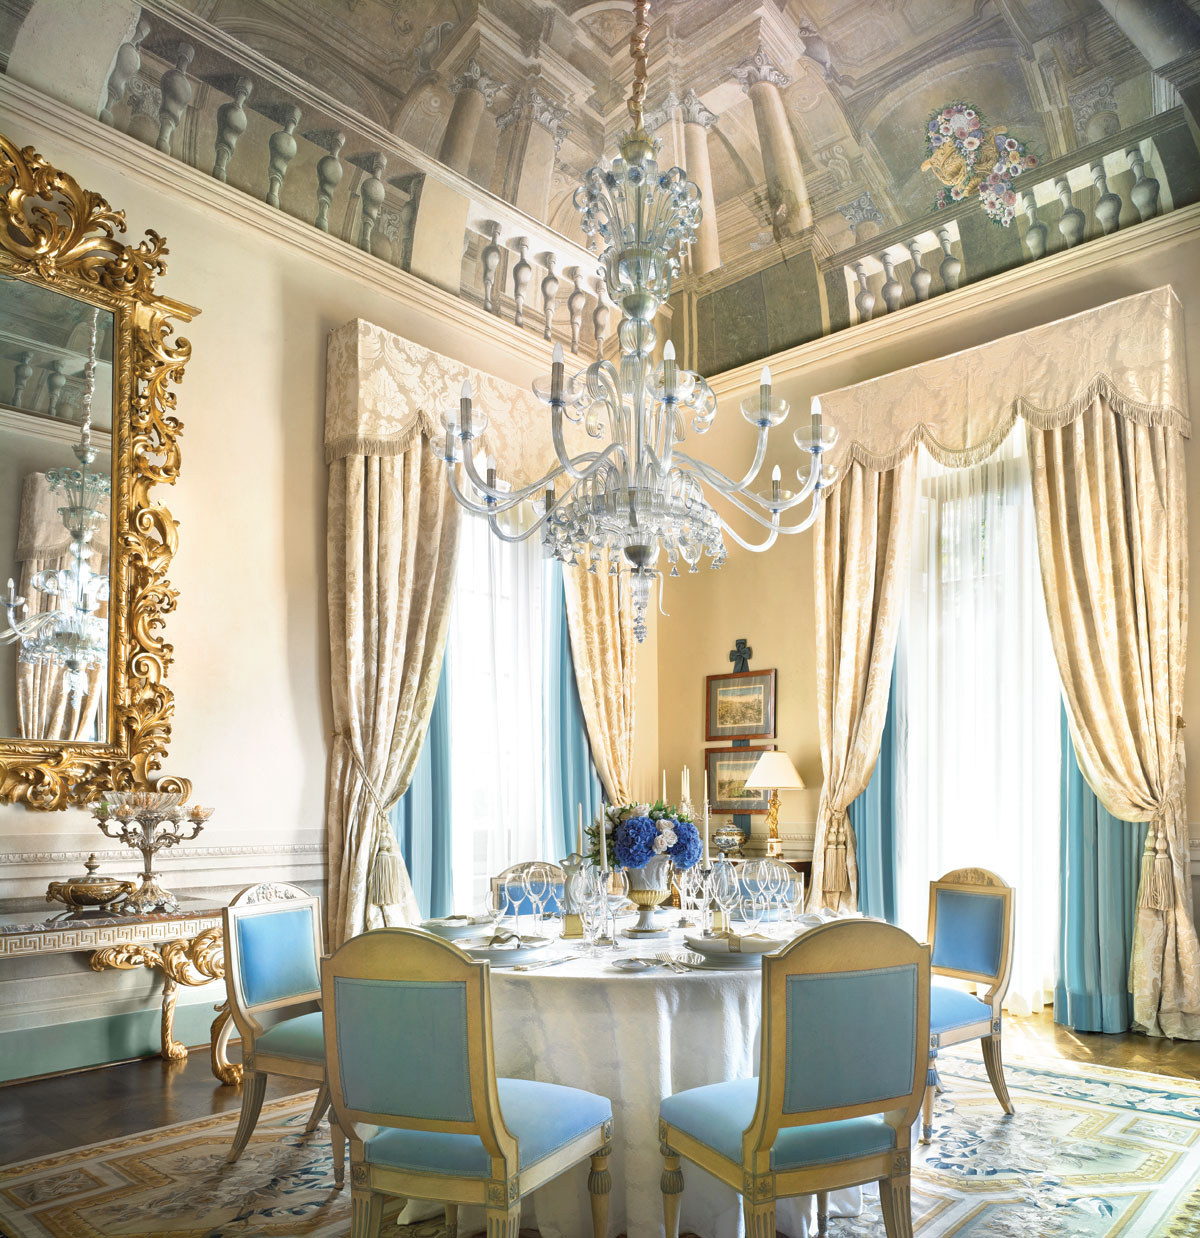 In The regal Royal Suite, an elegantly appointed dining room with a soaring frescoed ceiling comfortably seats eight.